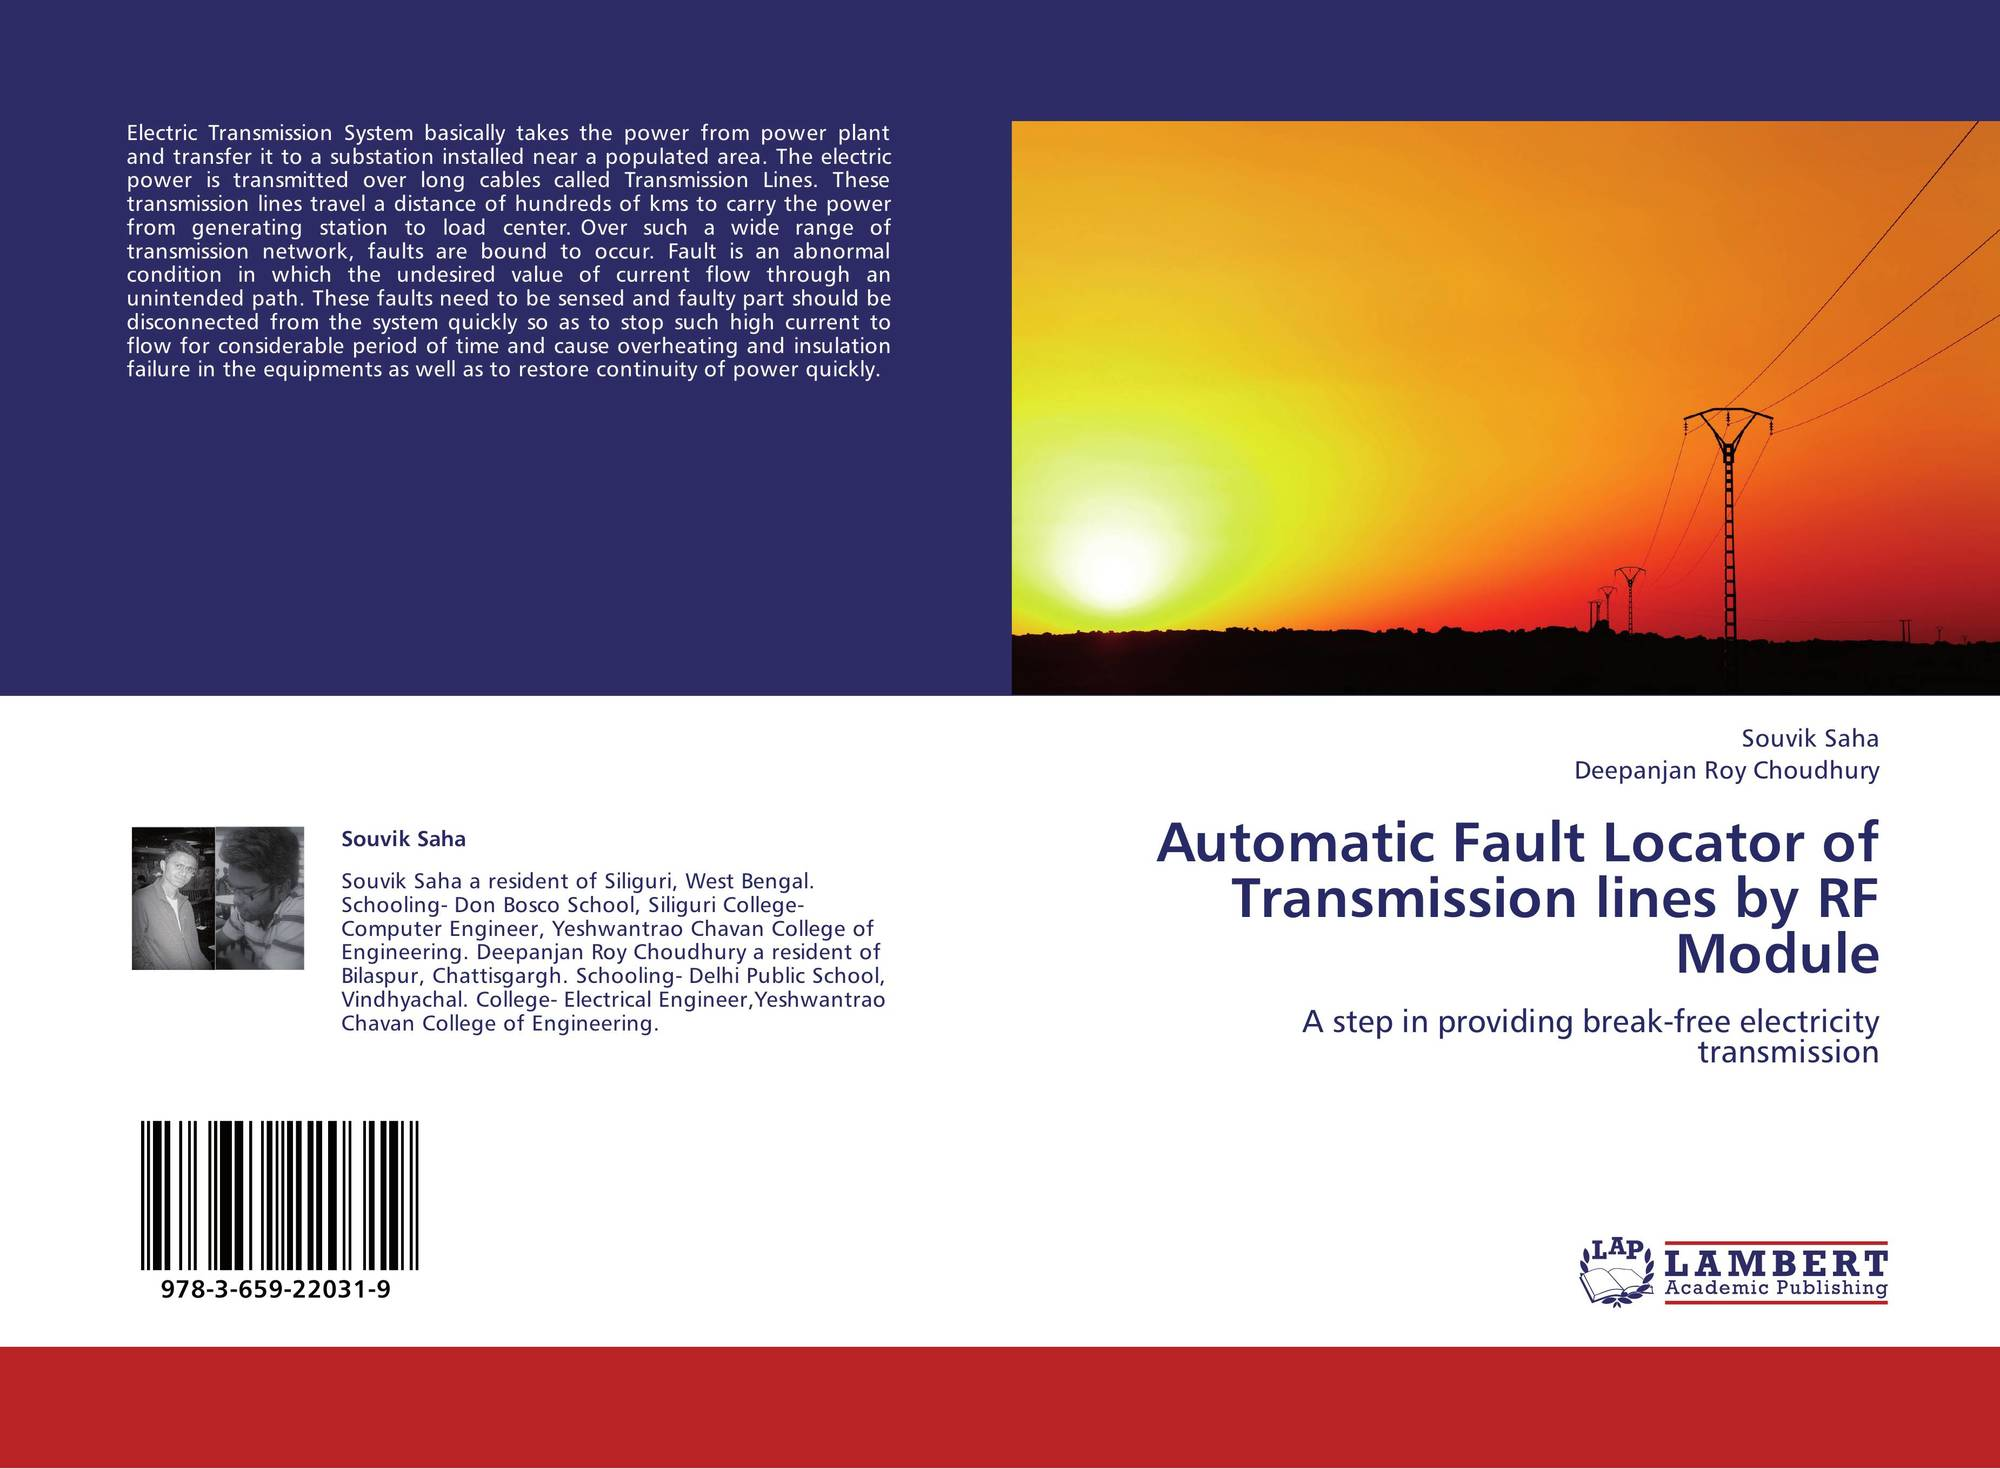 Automatic Fault Locator of Transmission lines by RF Module